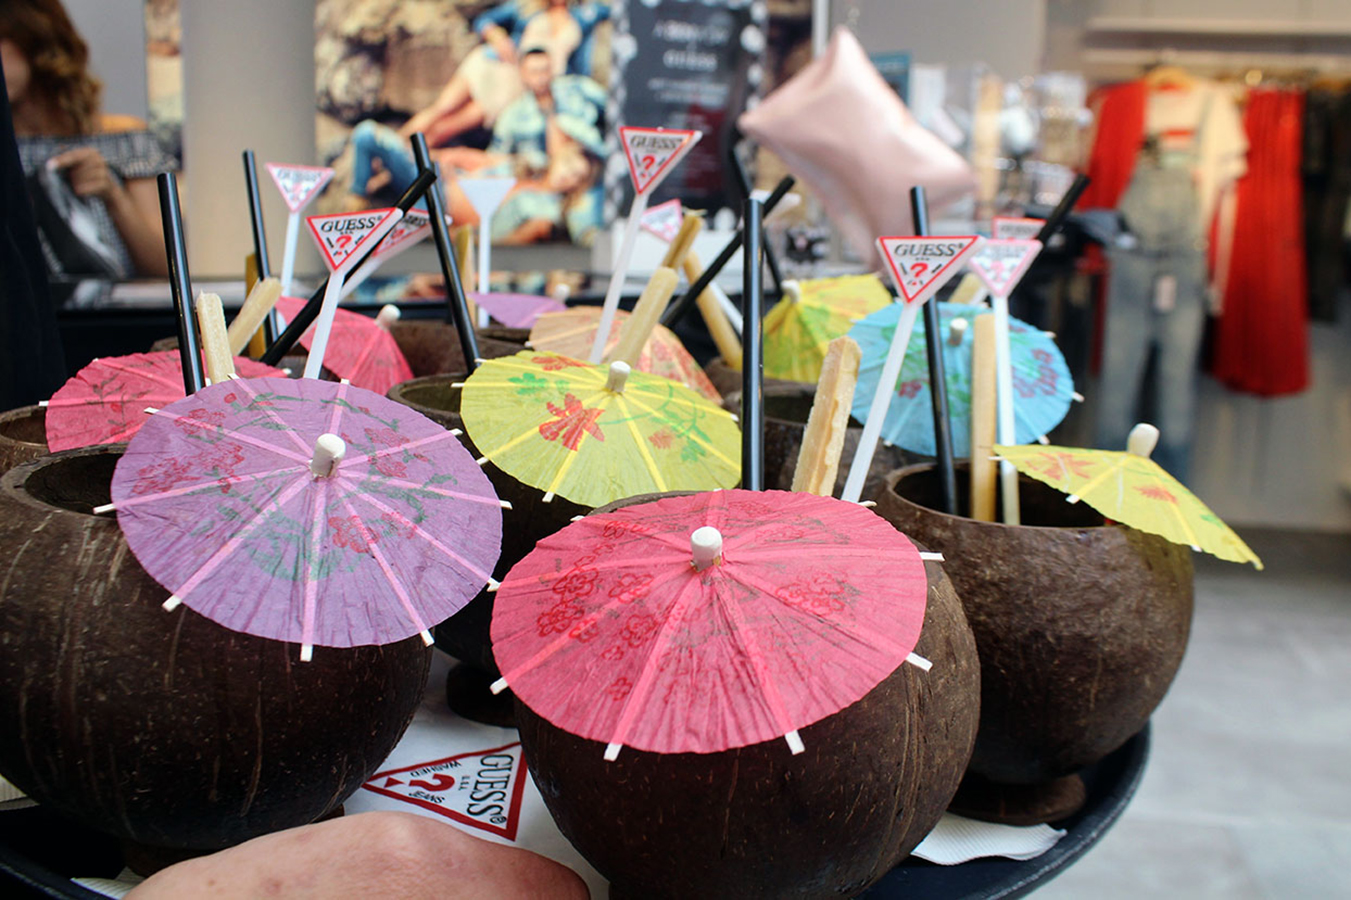 Pineapple mojitos in coconut cups were perfect for the A Bikini A Day event at the GUESS Lincoln Road store event